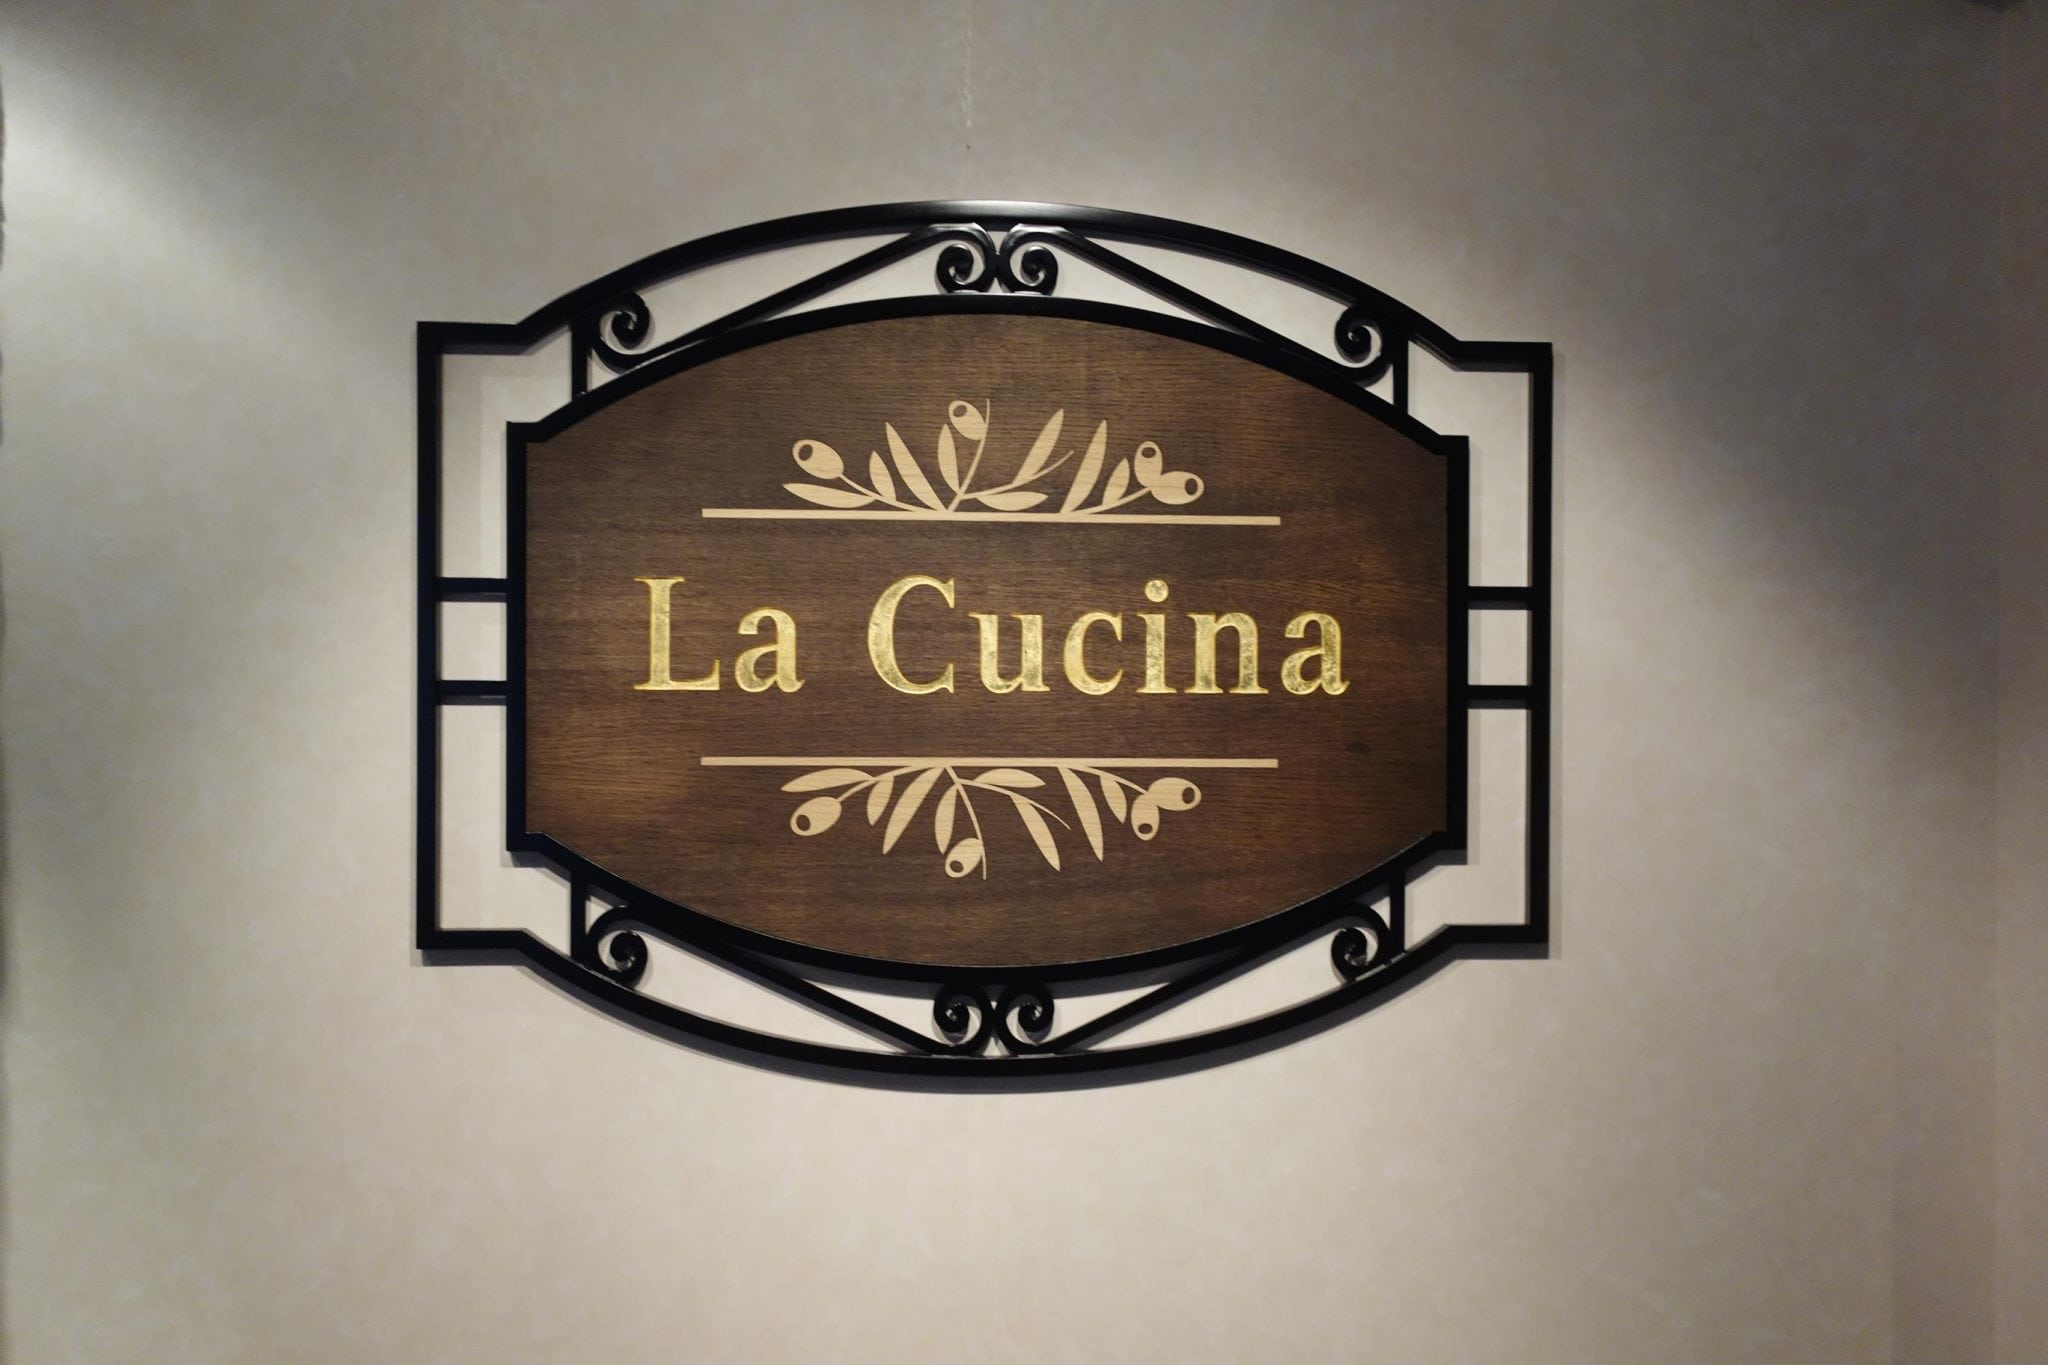 La Cucina Italiana Cozumel La Cucina On Norwegian Escape Eatsleepcruise